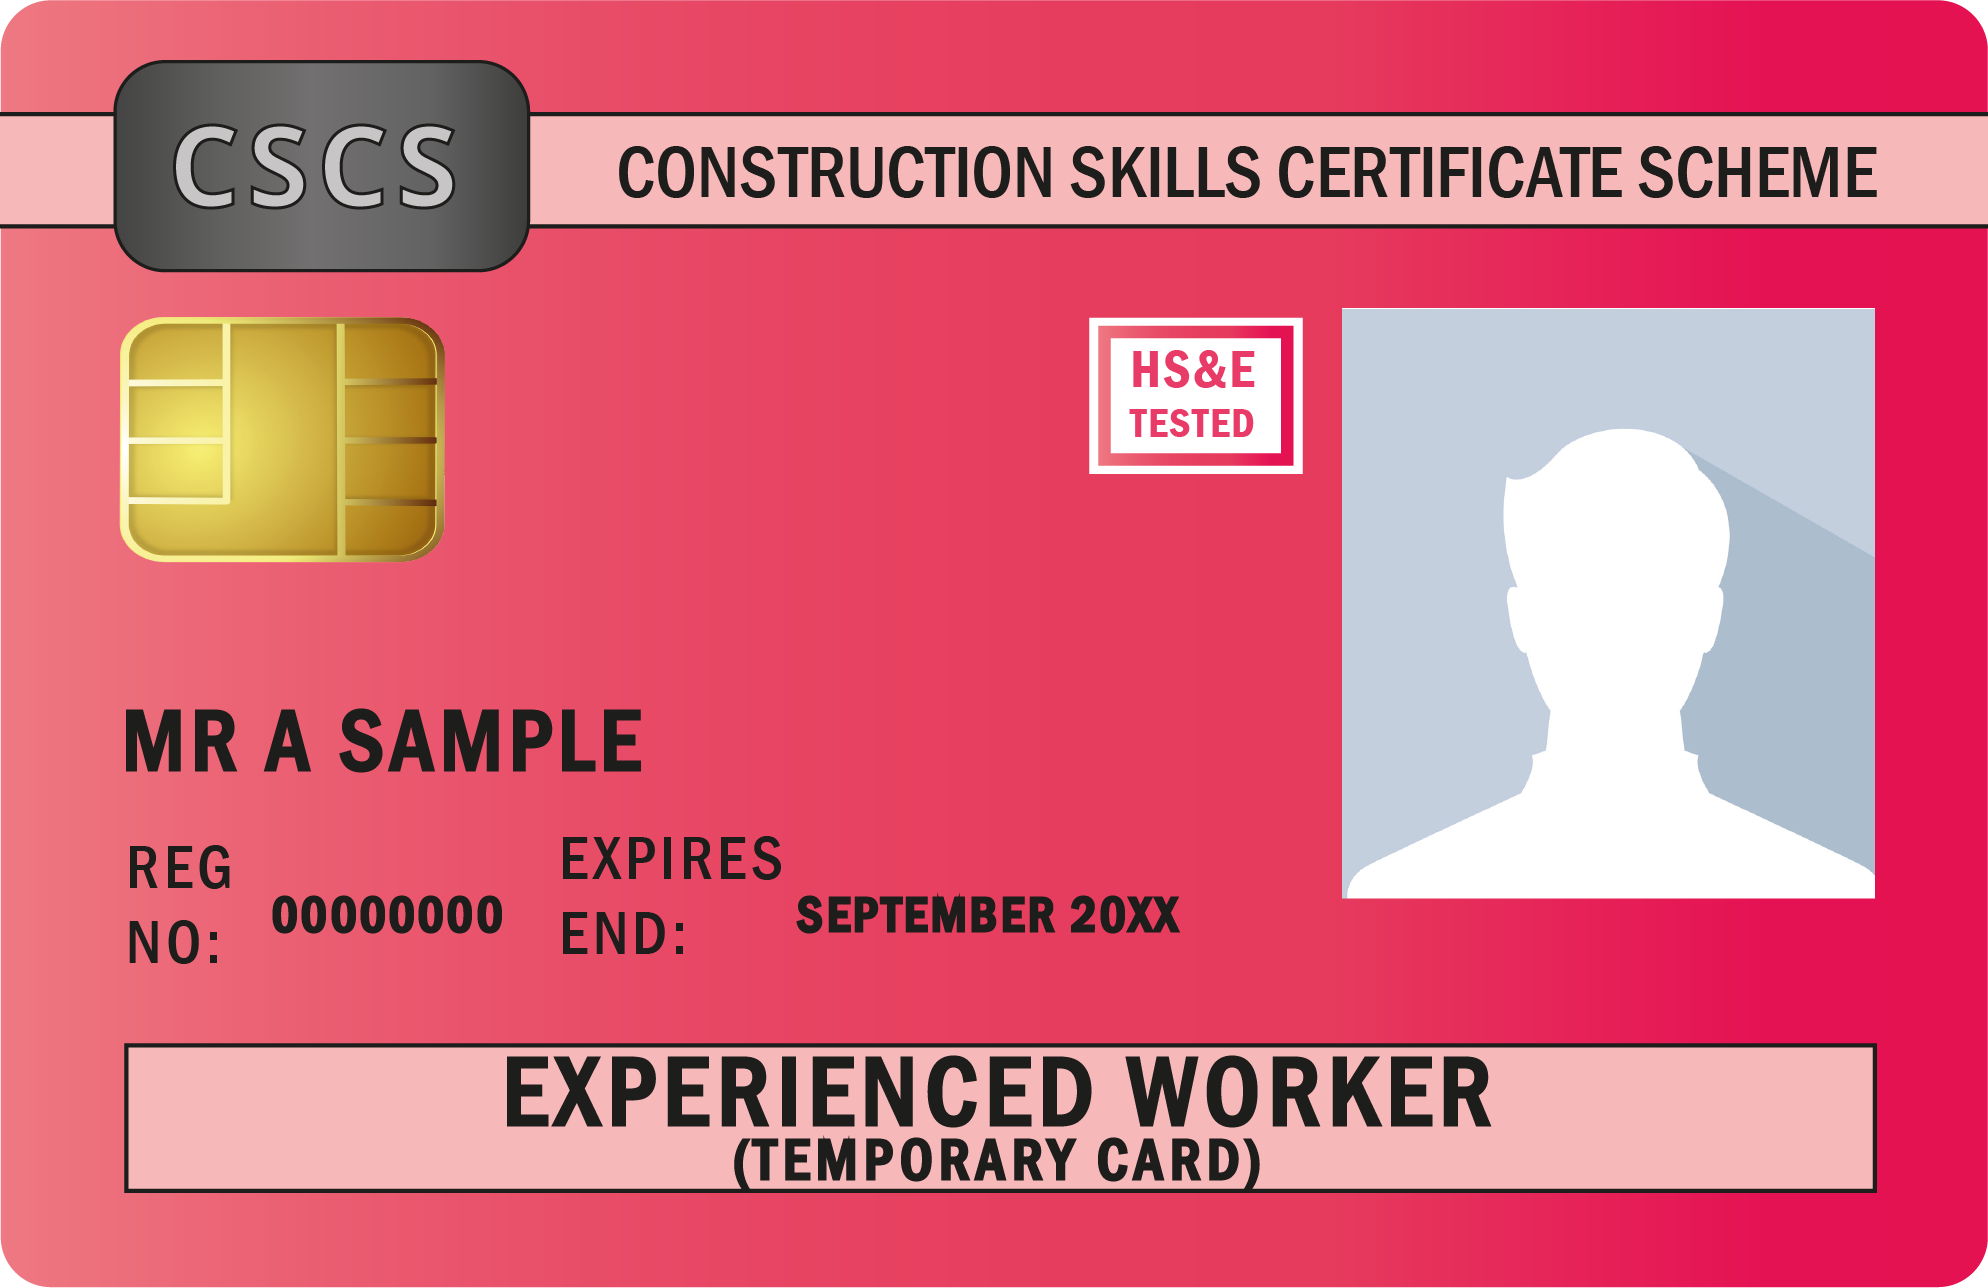 Image shows Experienced Worker Red Card